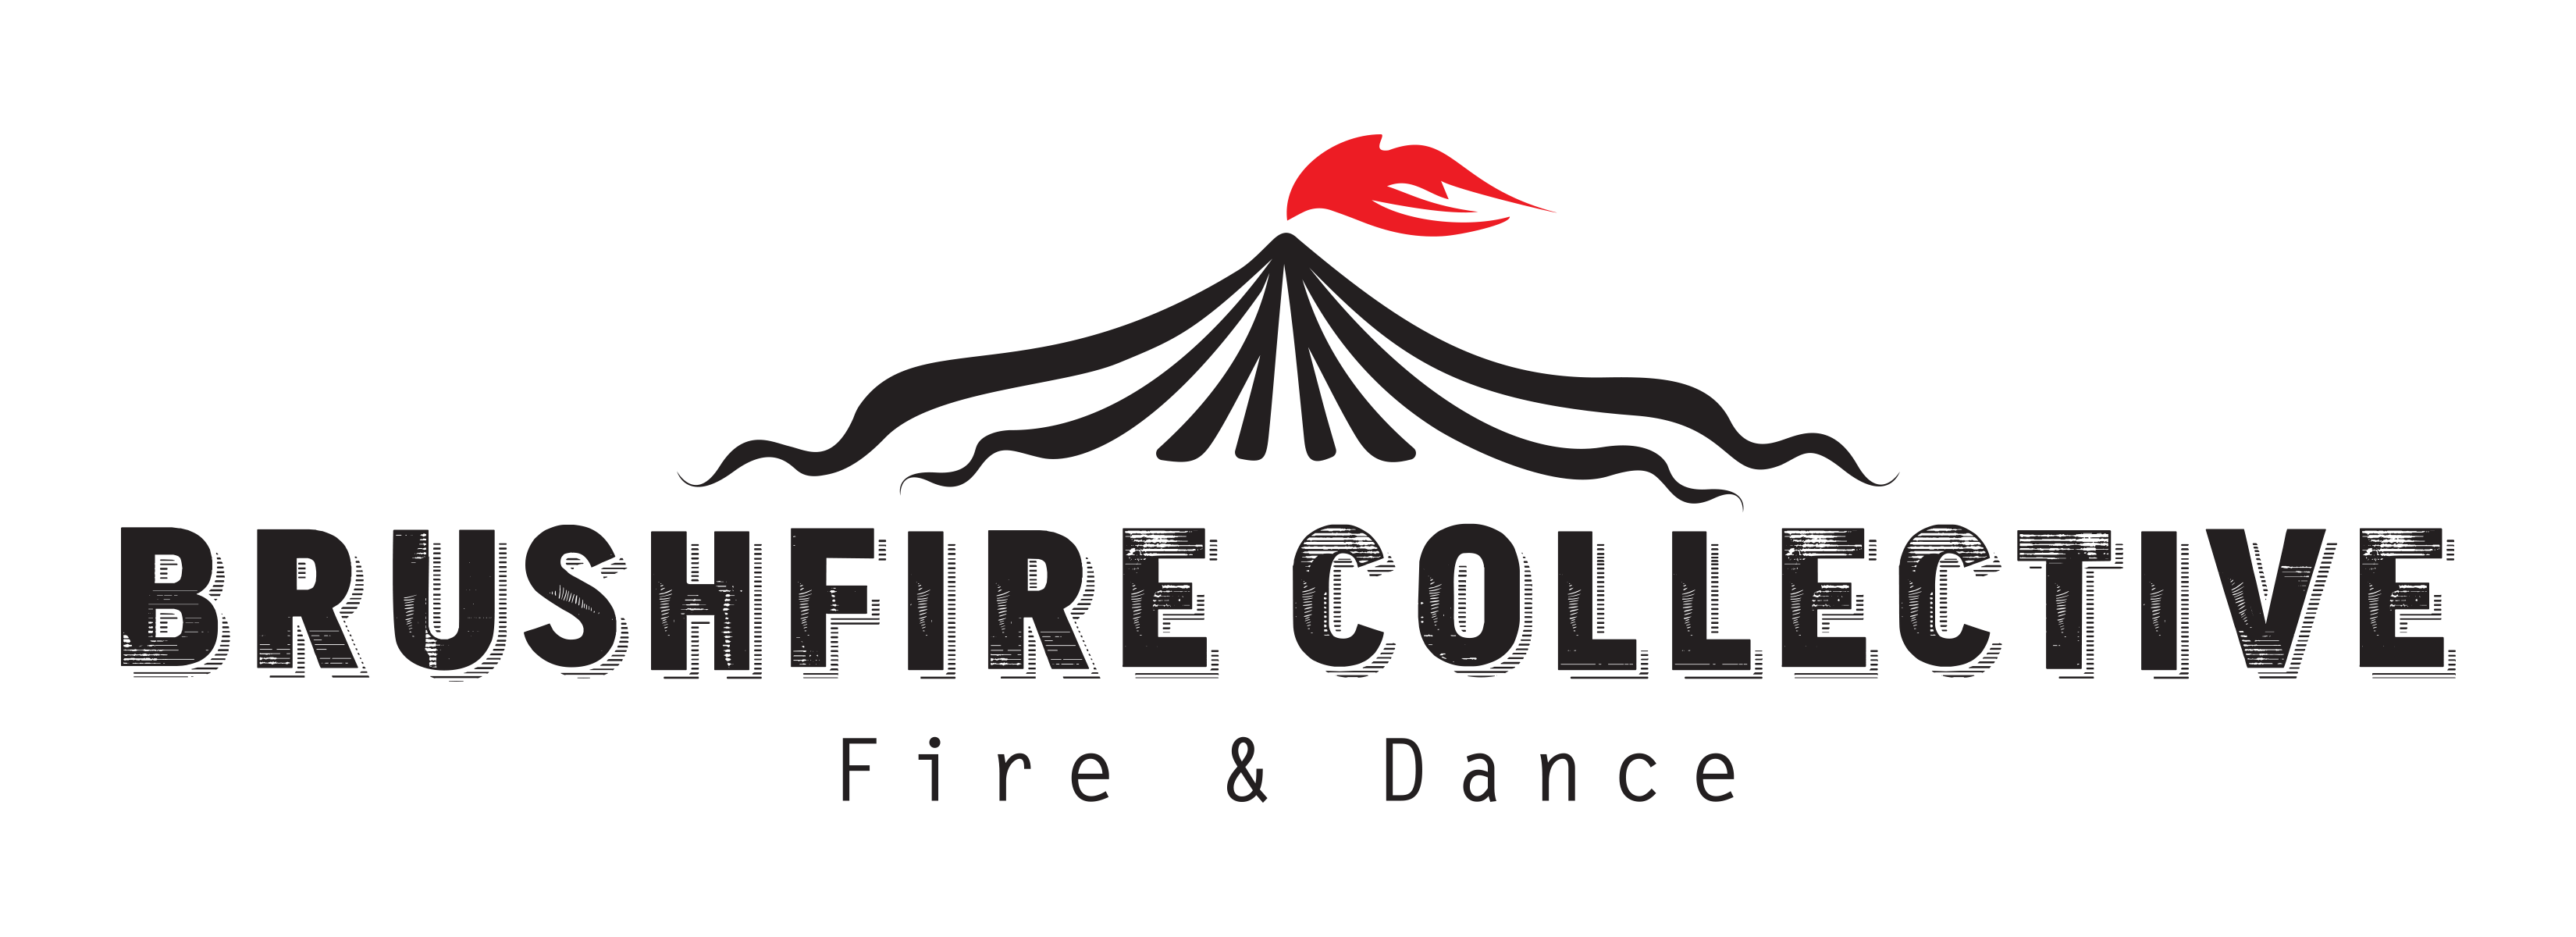 11x4-Brushfire-Collective-Logo (1)